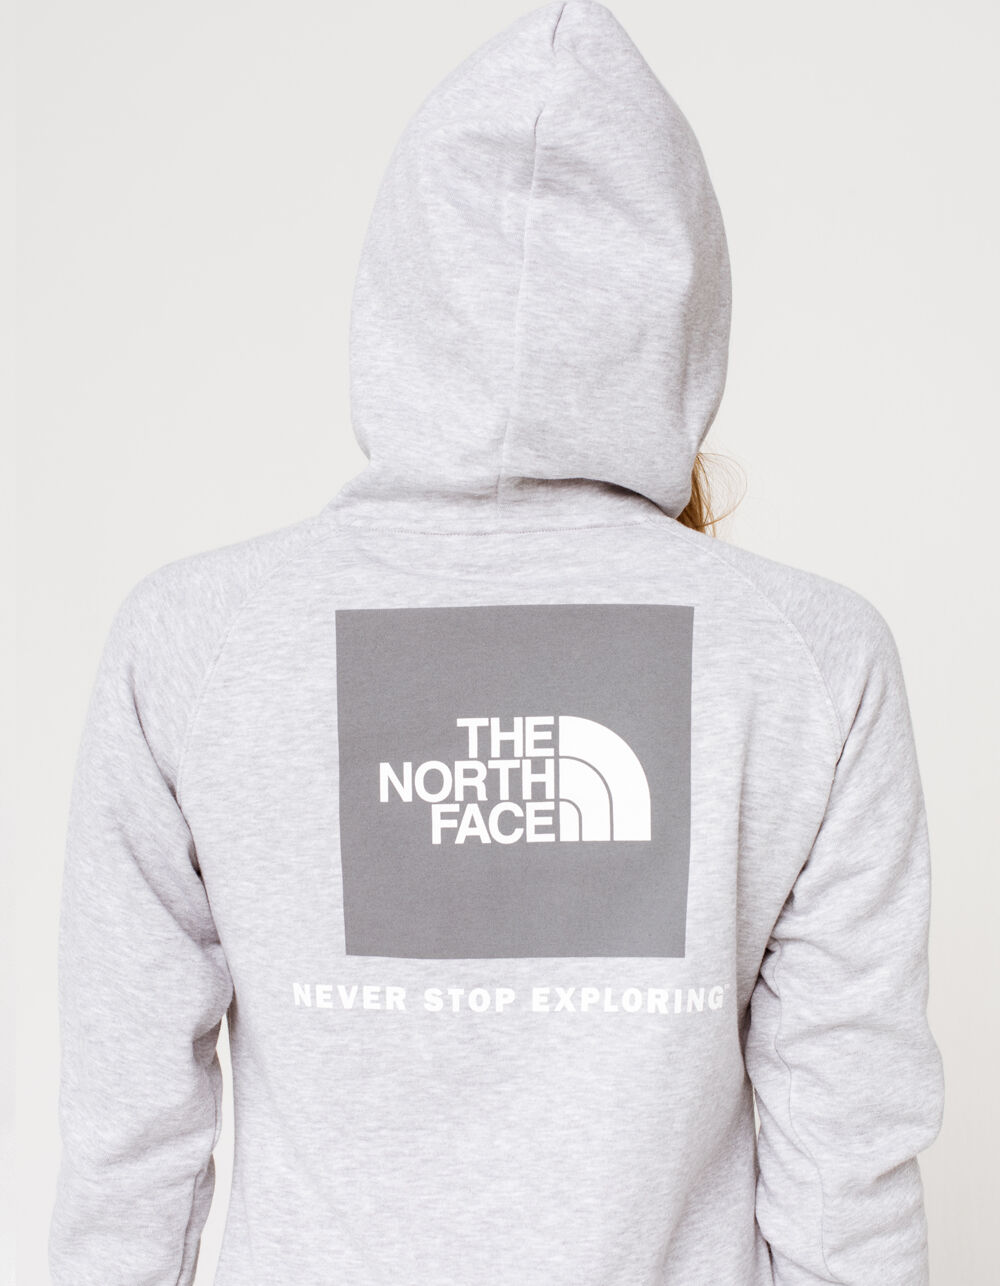 THE NORTH FACE Red Box Grey Hoodie